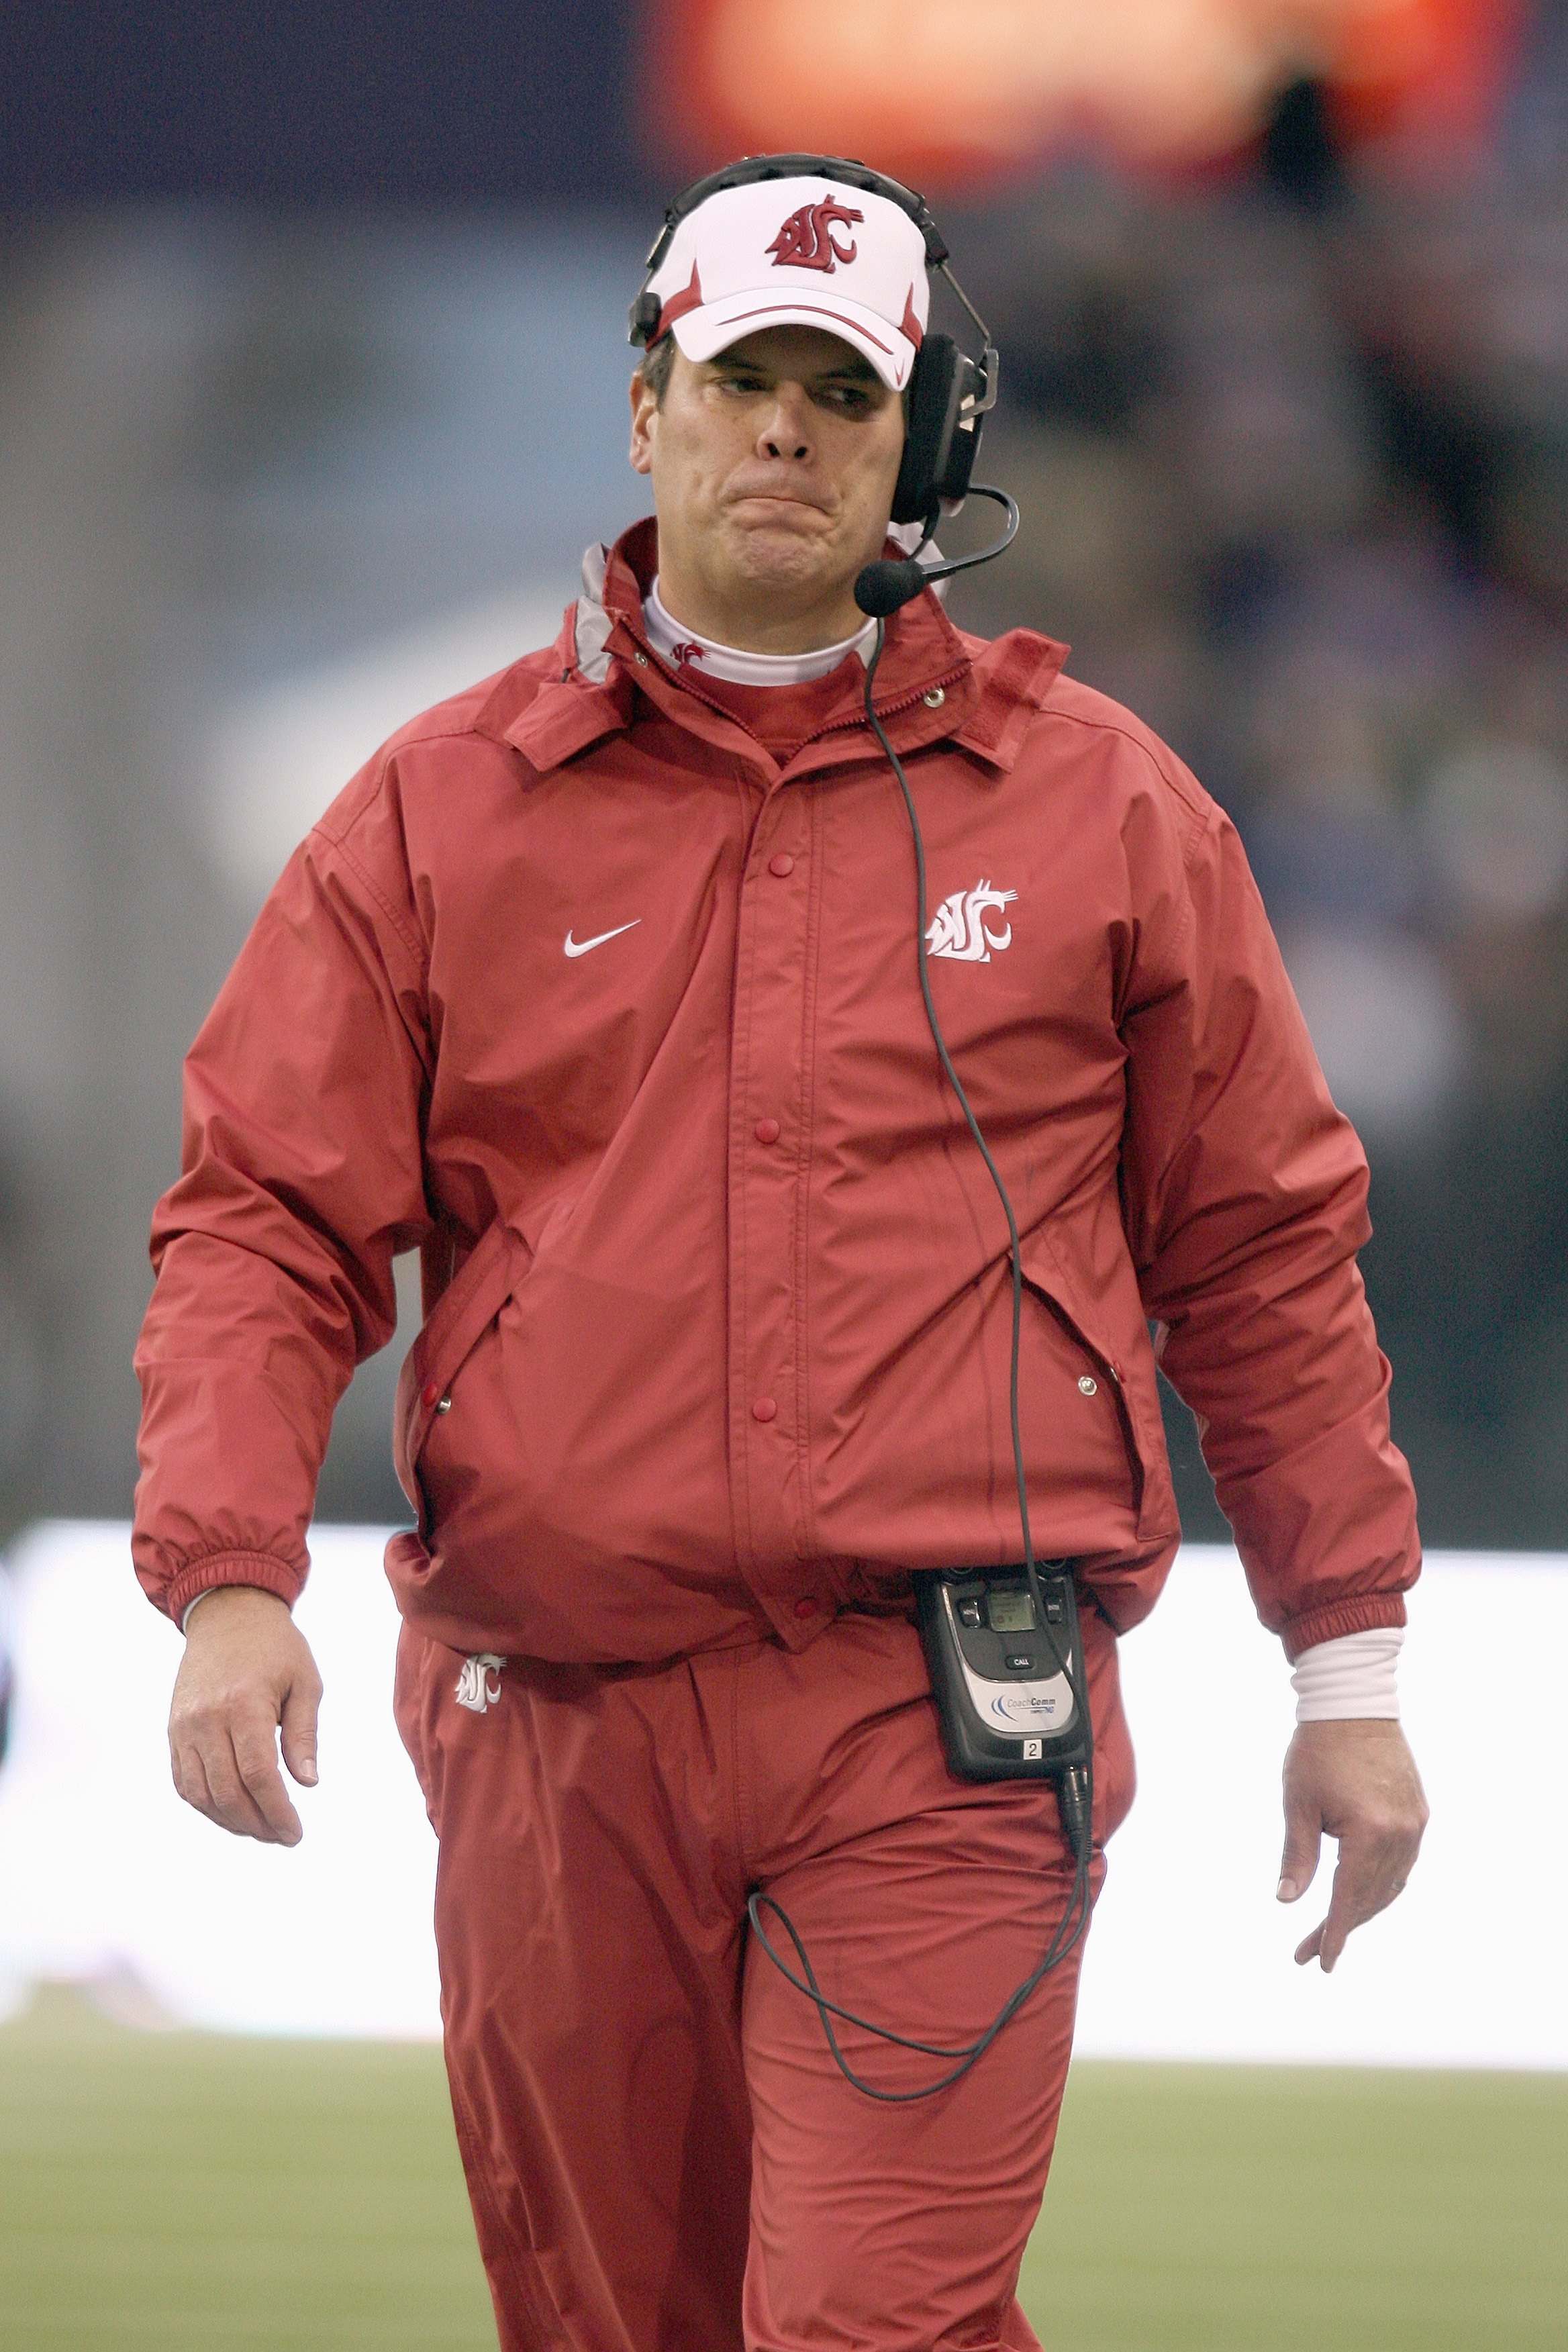 SEATTLE - NOVEMBER 28: Head coach Paul Wulff of the Washington State Cougars walks on the field during the game against the Washington Huskies on November 28, 2009 at Husky Stadium in Seattle, Washington. The Huskies defeated the Cougars 30-0. (Photo by O